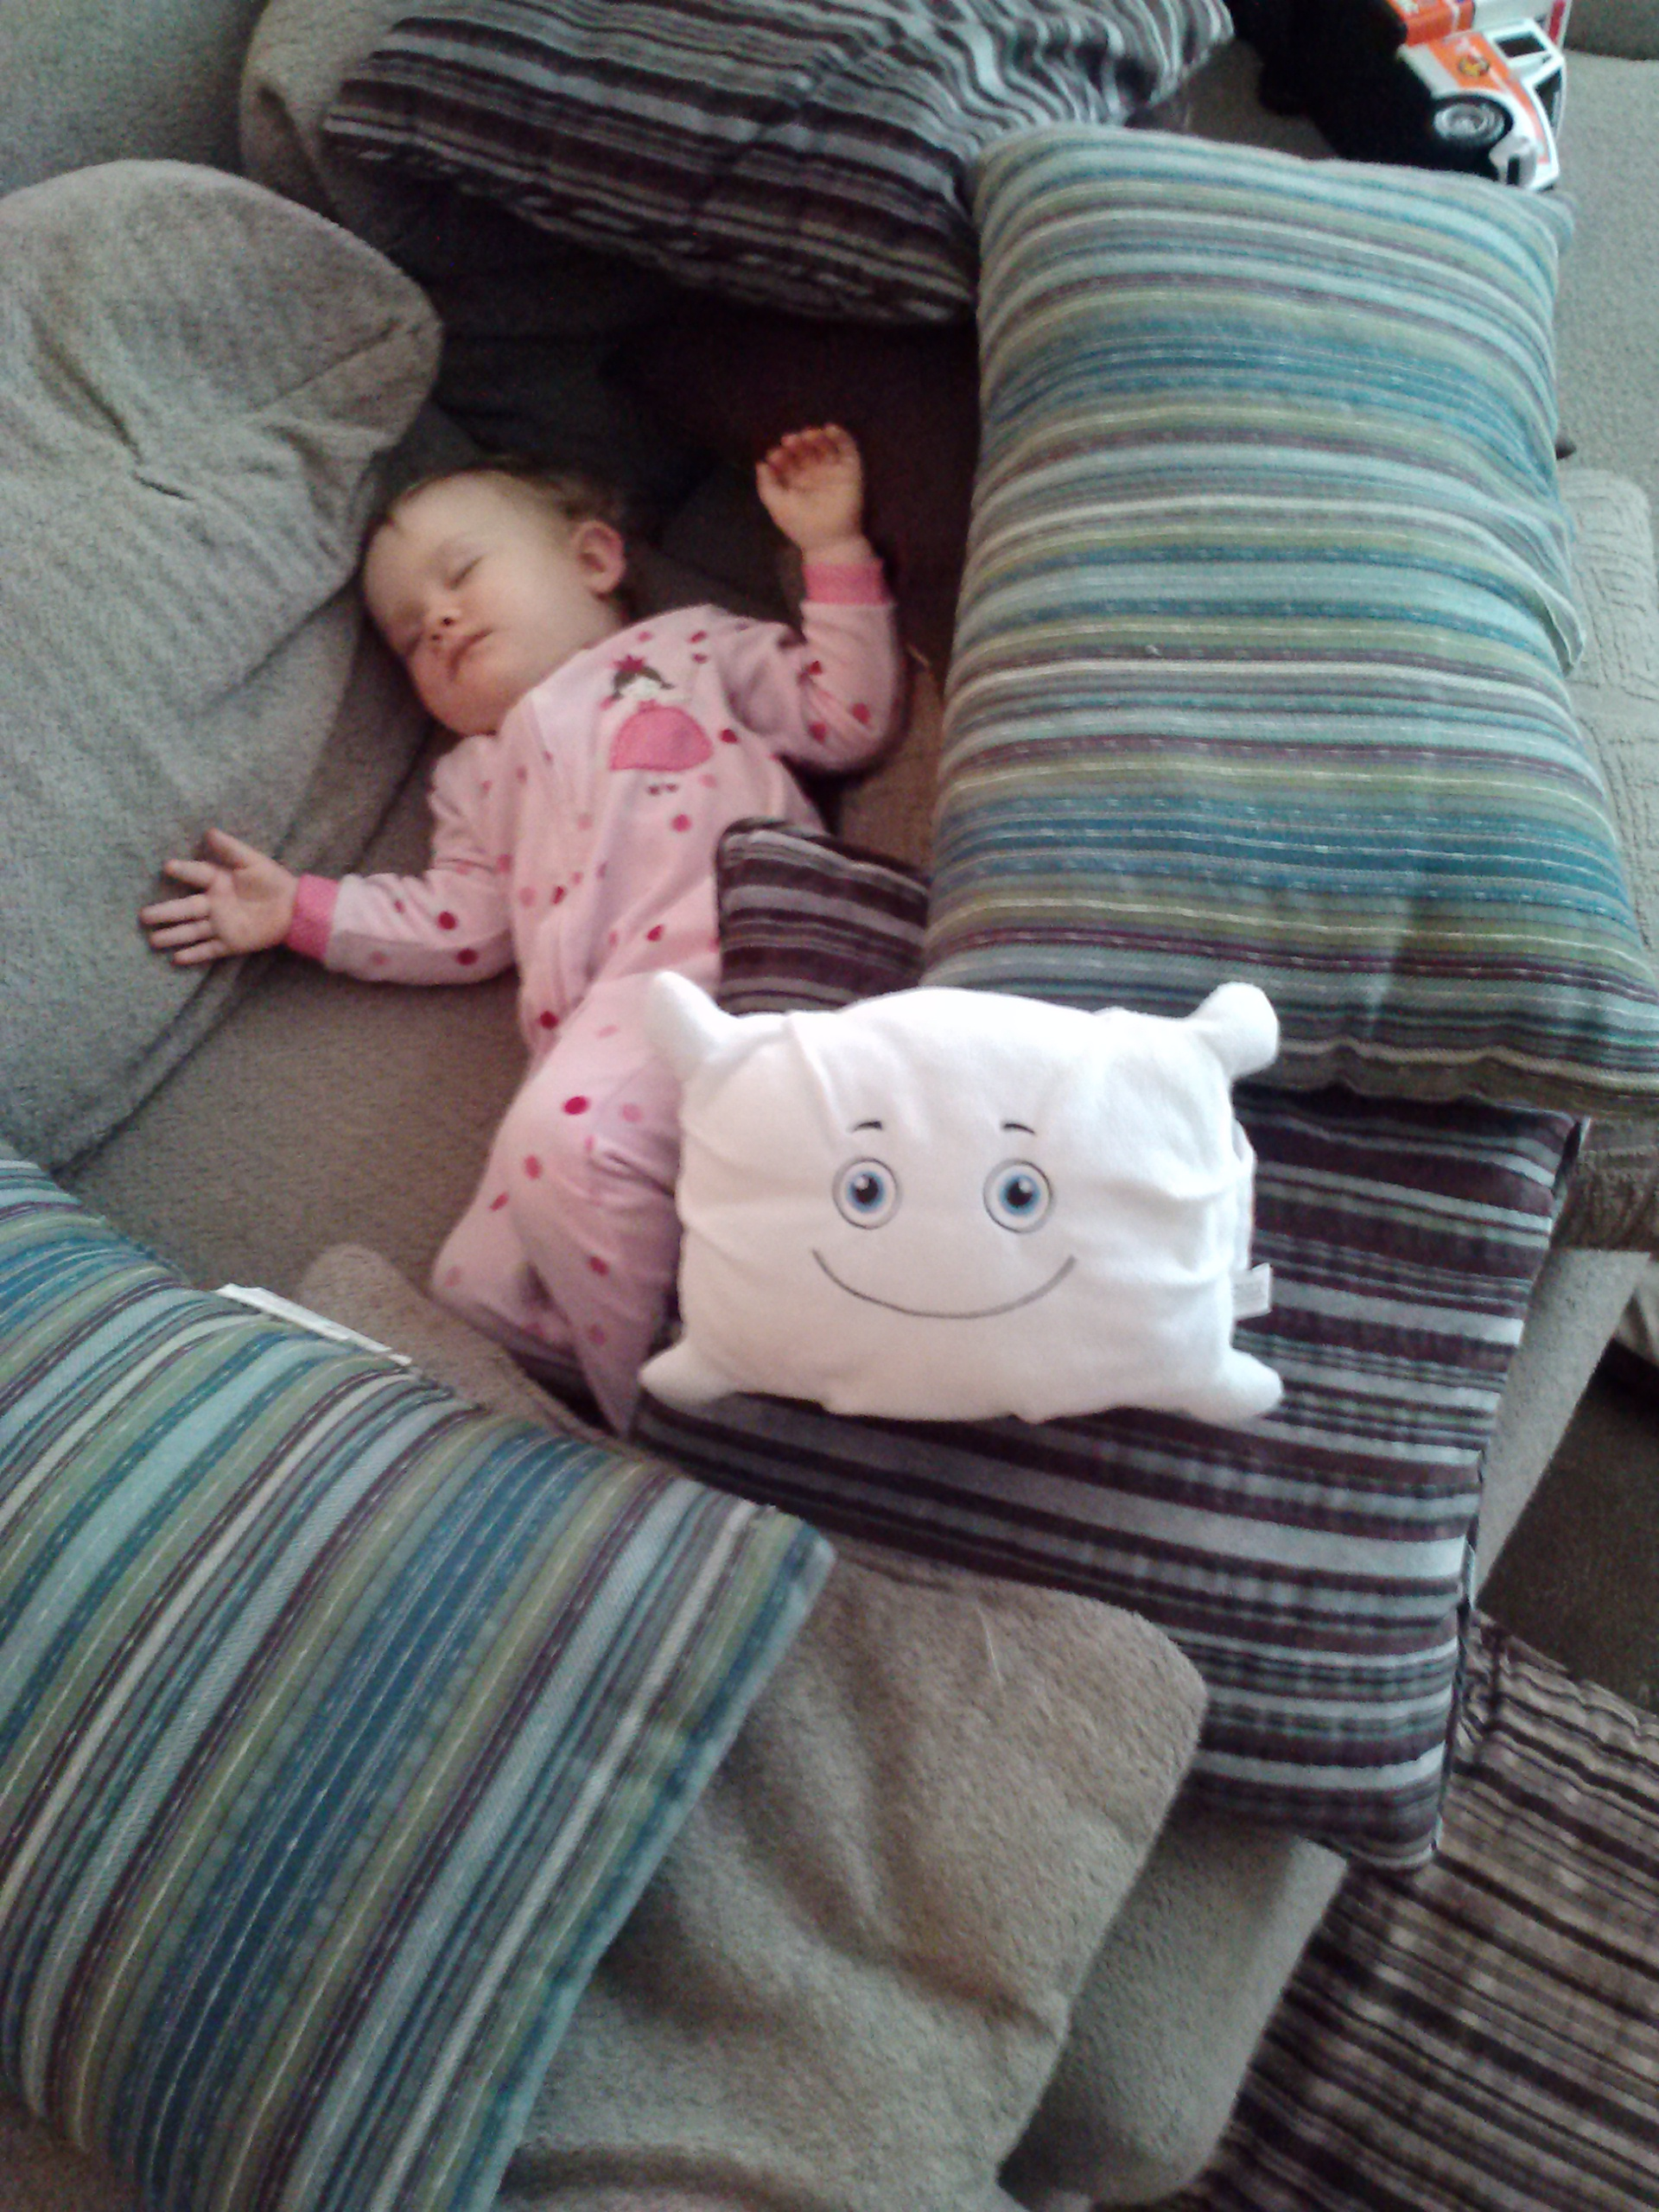 Part of a pillow fortress to protect a napping baby